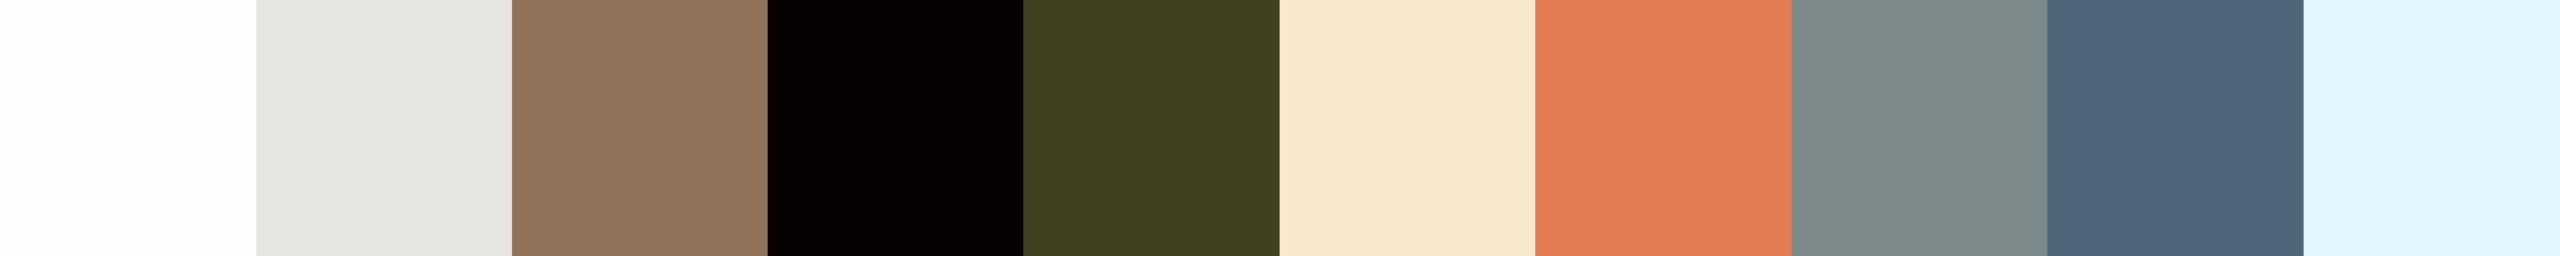 377 Anaclasia Color Palette